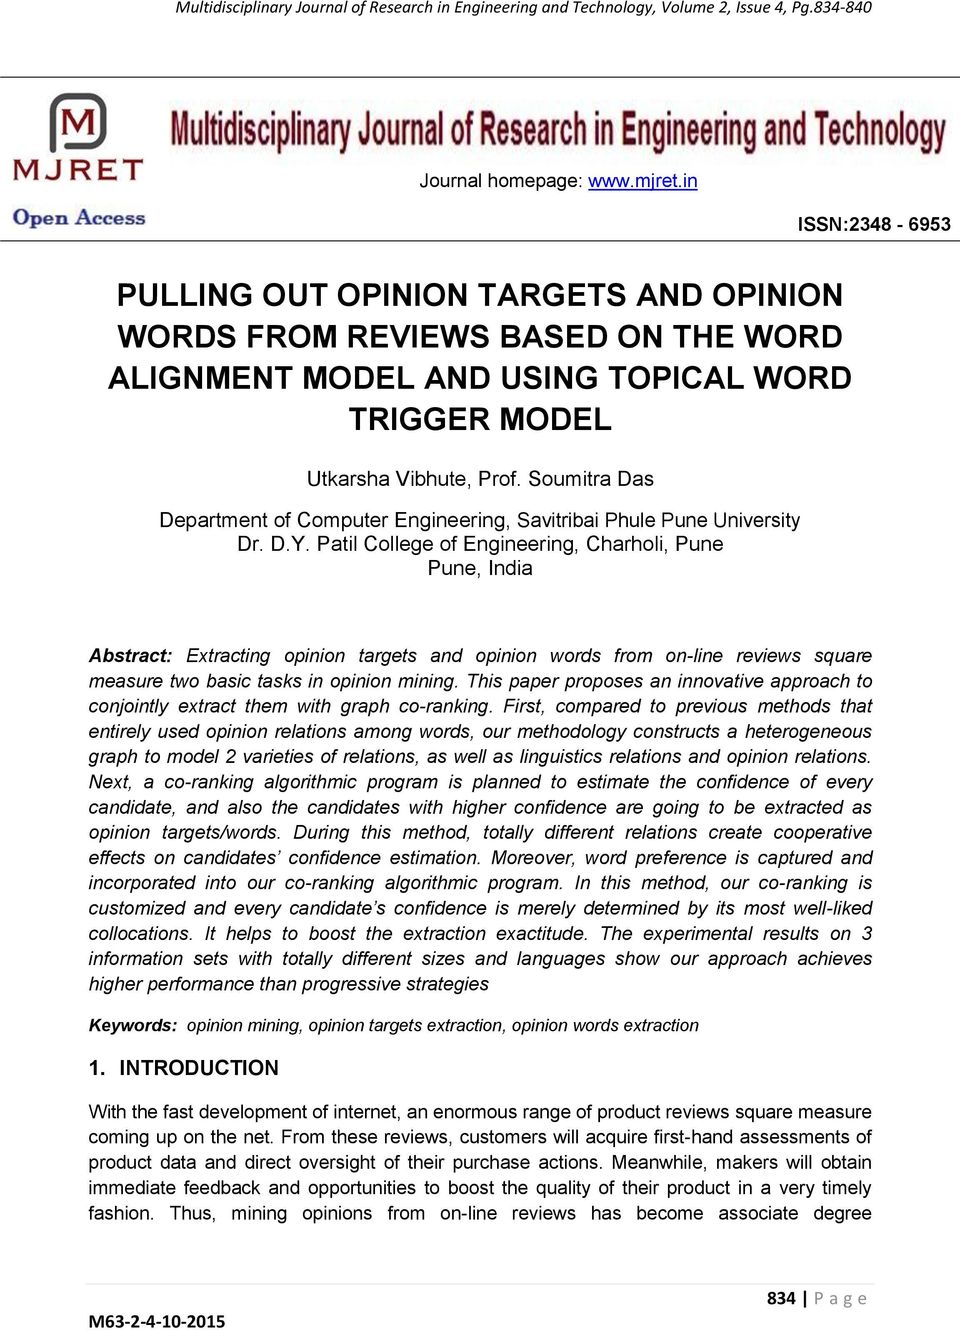 Patil College of Engineering, Charholi, Pune Pune, India Abstract: Extracting opinion targets and opinion words from on-line reviews square measure two basic tasks in opinion mining.